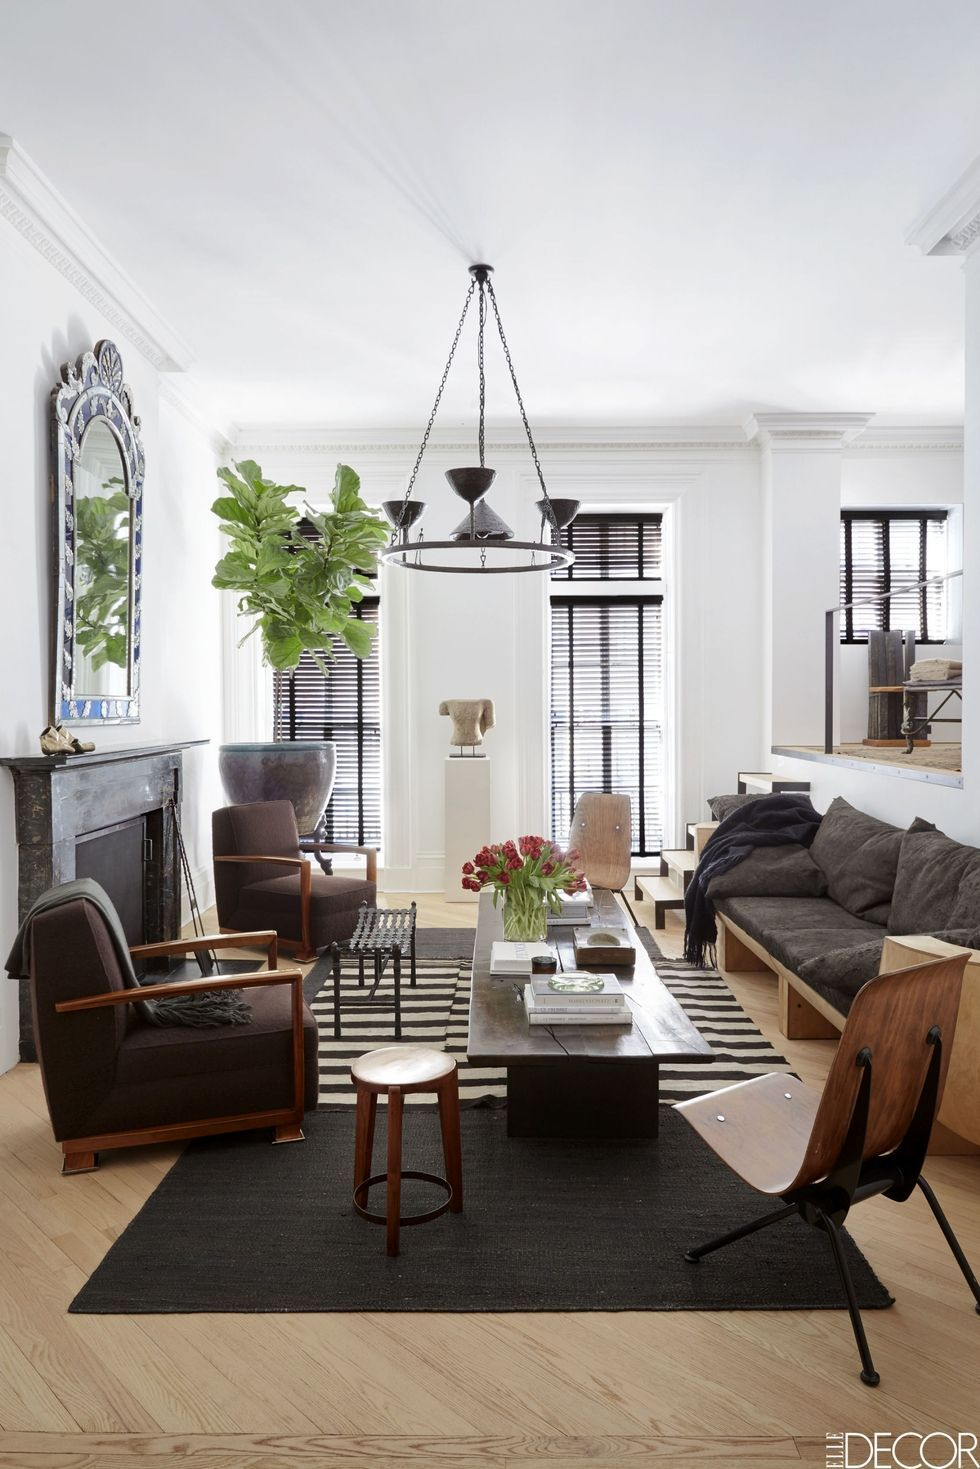 small living room ideas & Best Small Living Room Design Ideas - Small Living Room Decor ...